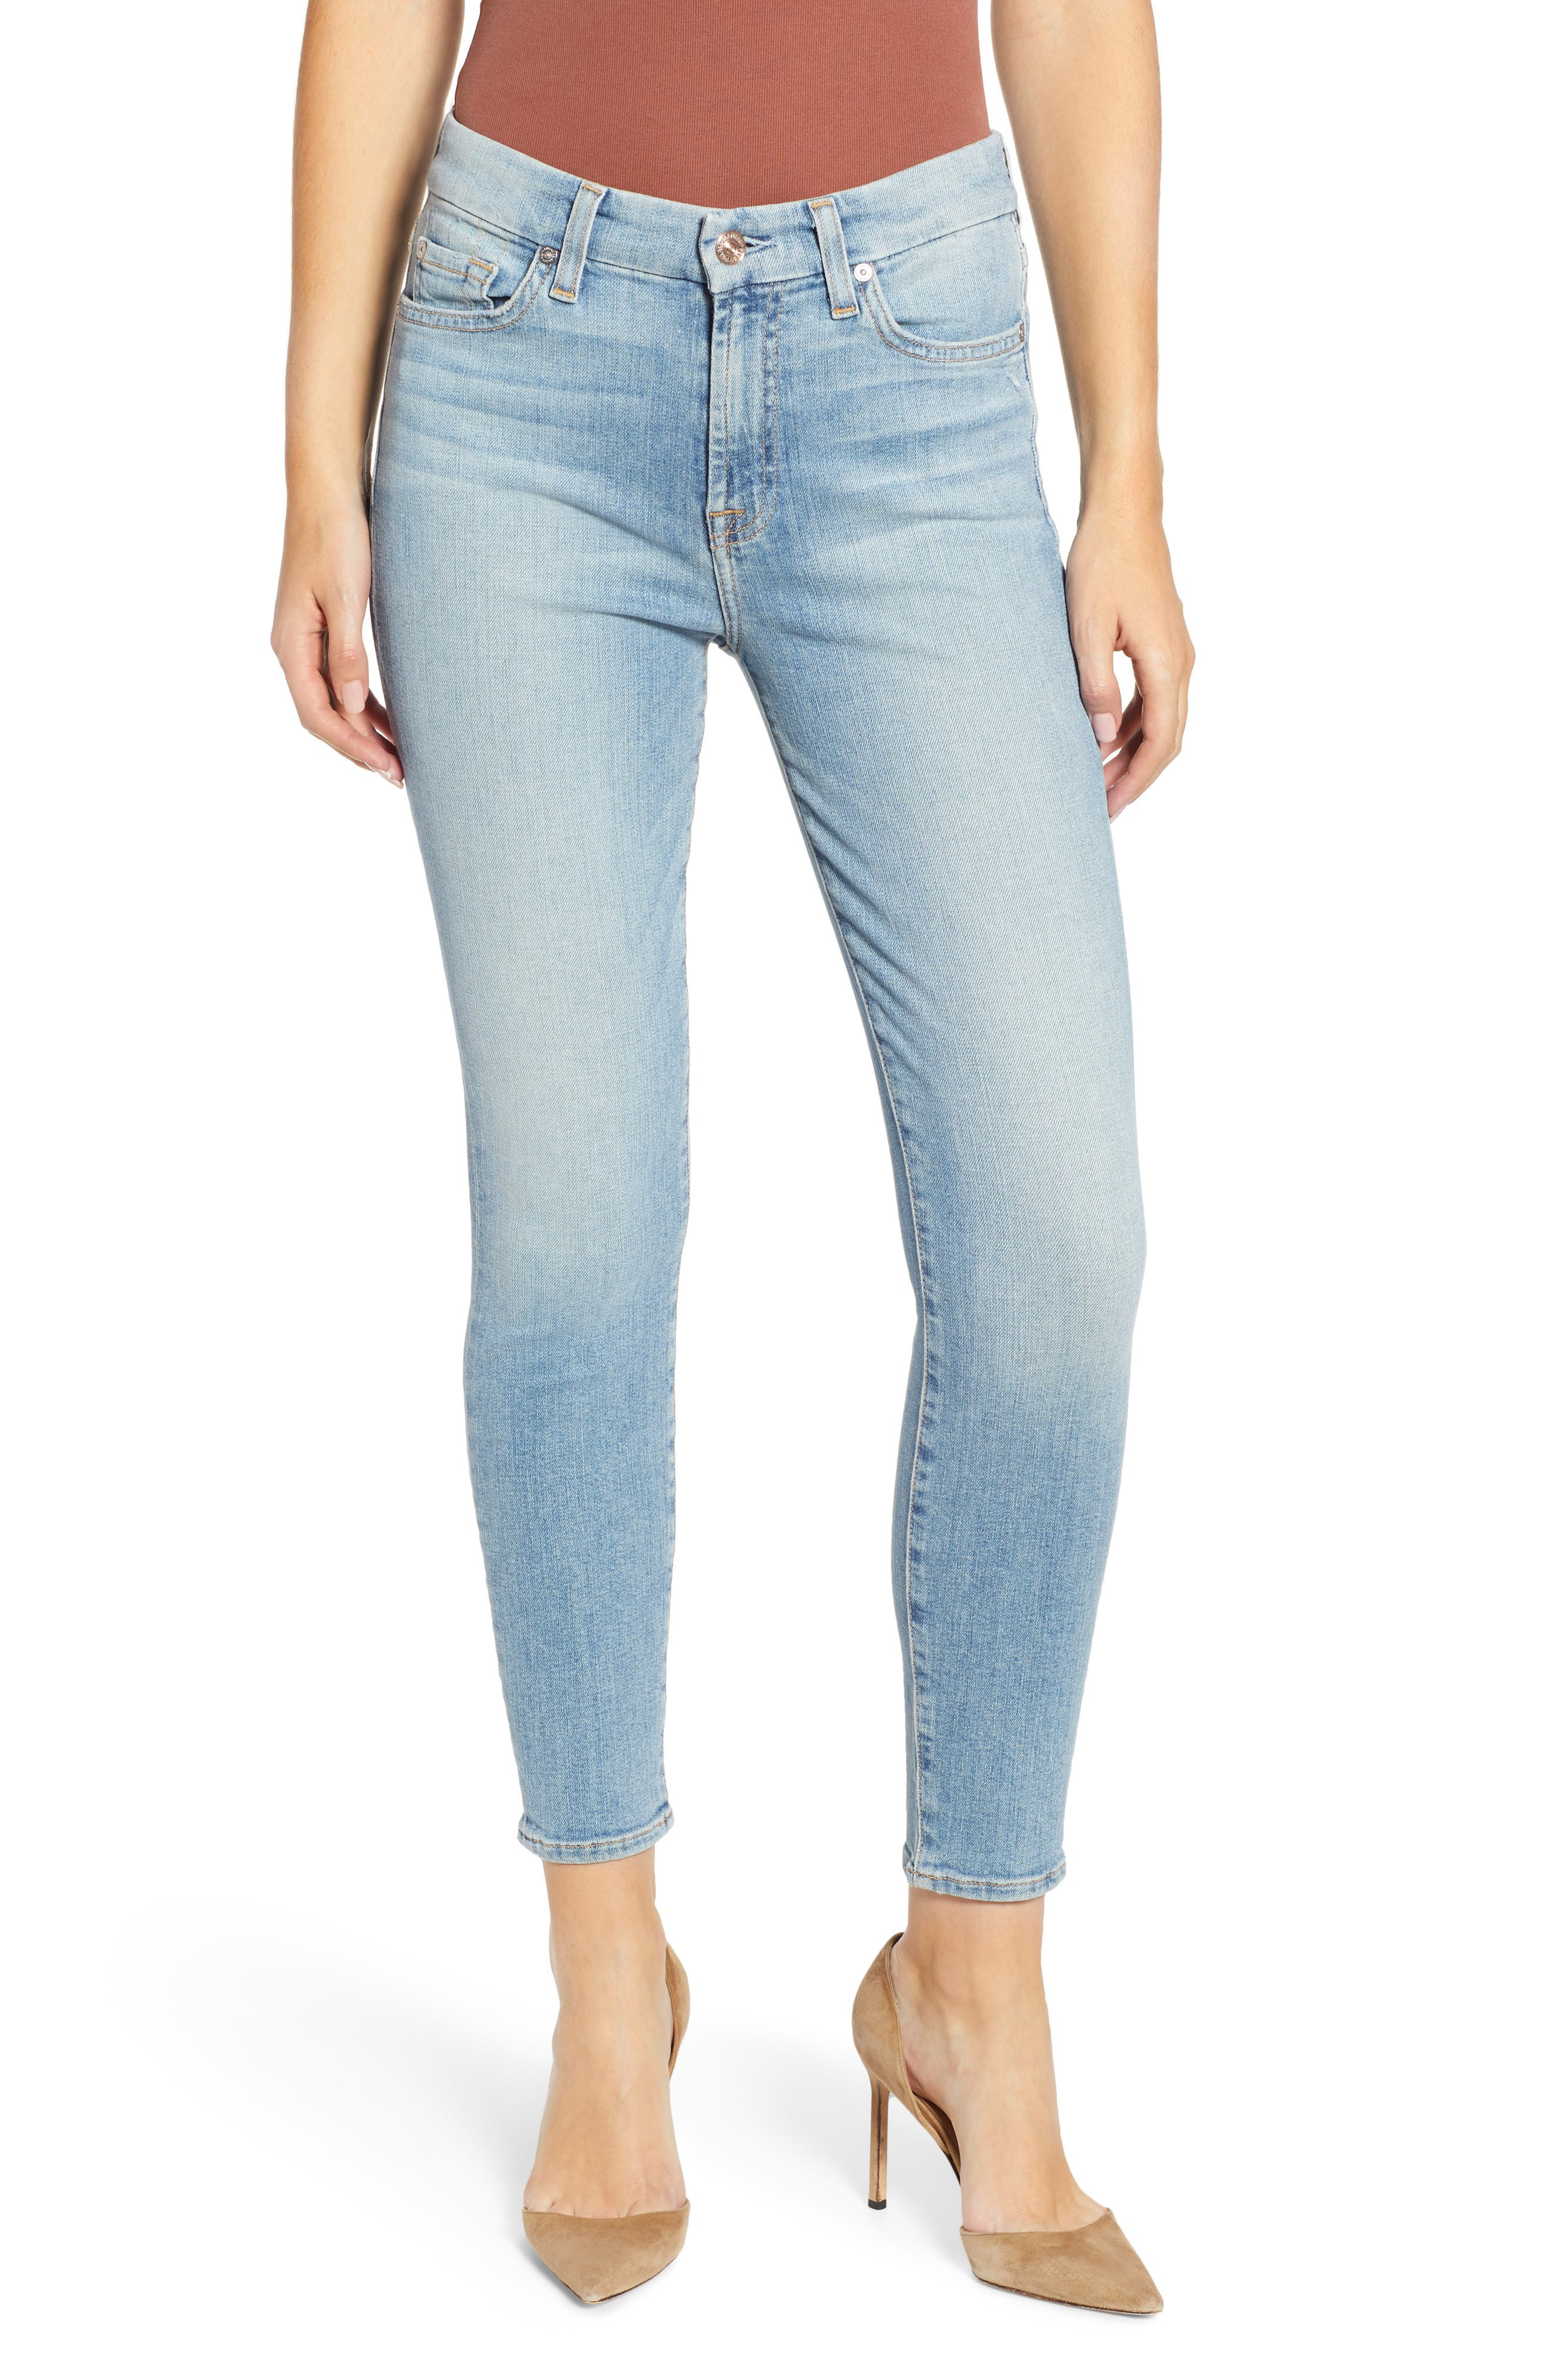 7 FOR ALL MANKIND<SUP>®</SUP>, The High Waist Ankle Skinny Jeans, Main thumbnail 1, color, SANDED LIGHT